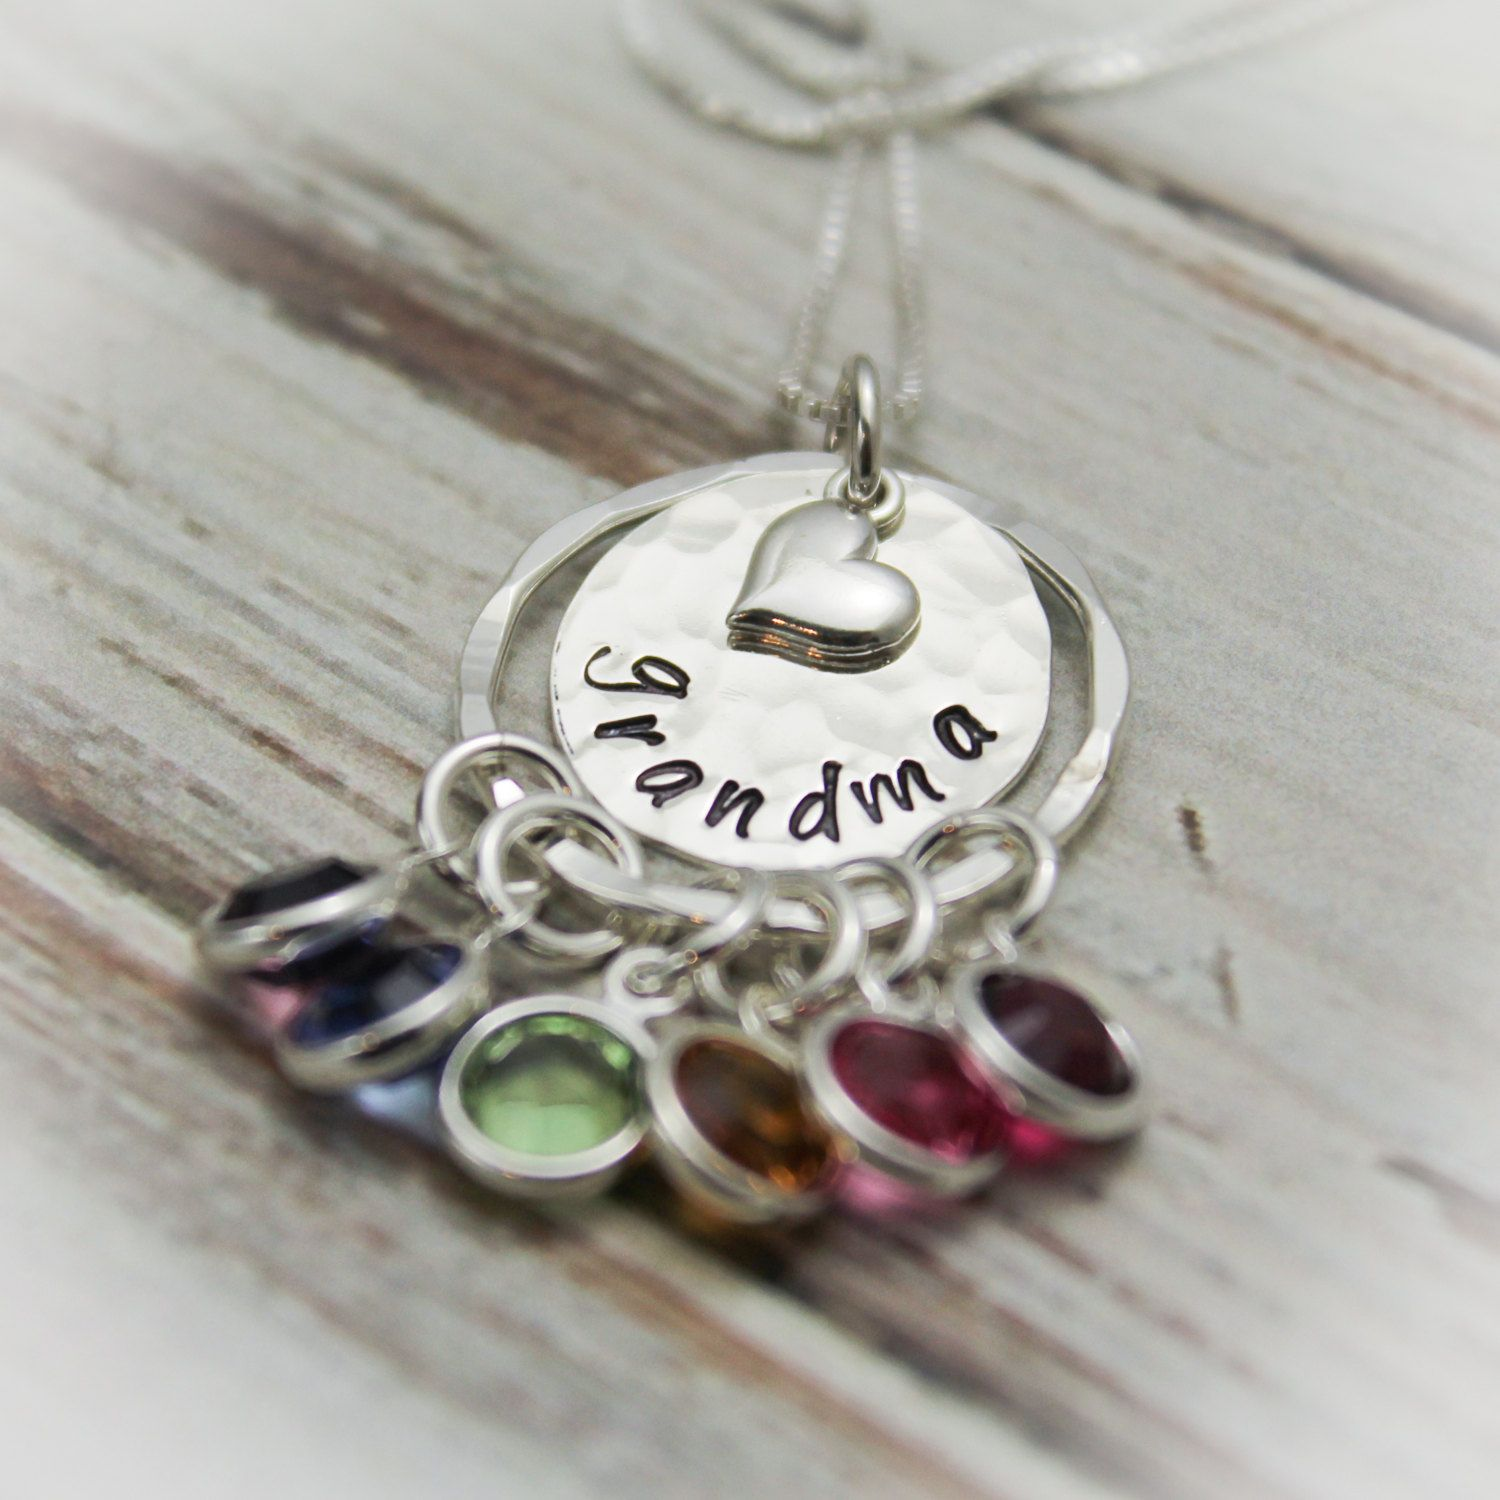 LEATHER PEARL NECKLACE with a Hand stamped Sterling Silver Pendant Susan